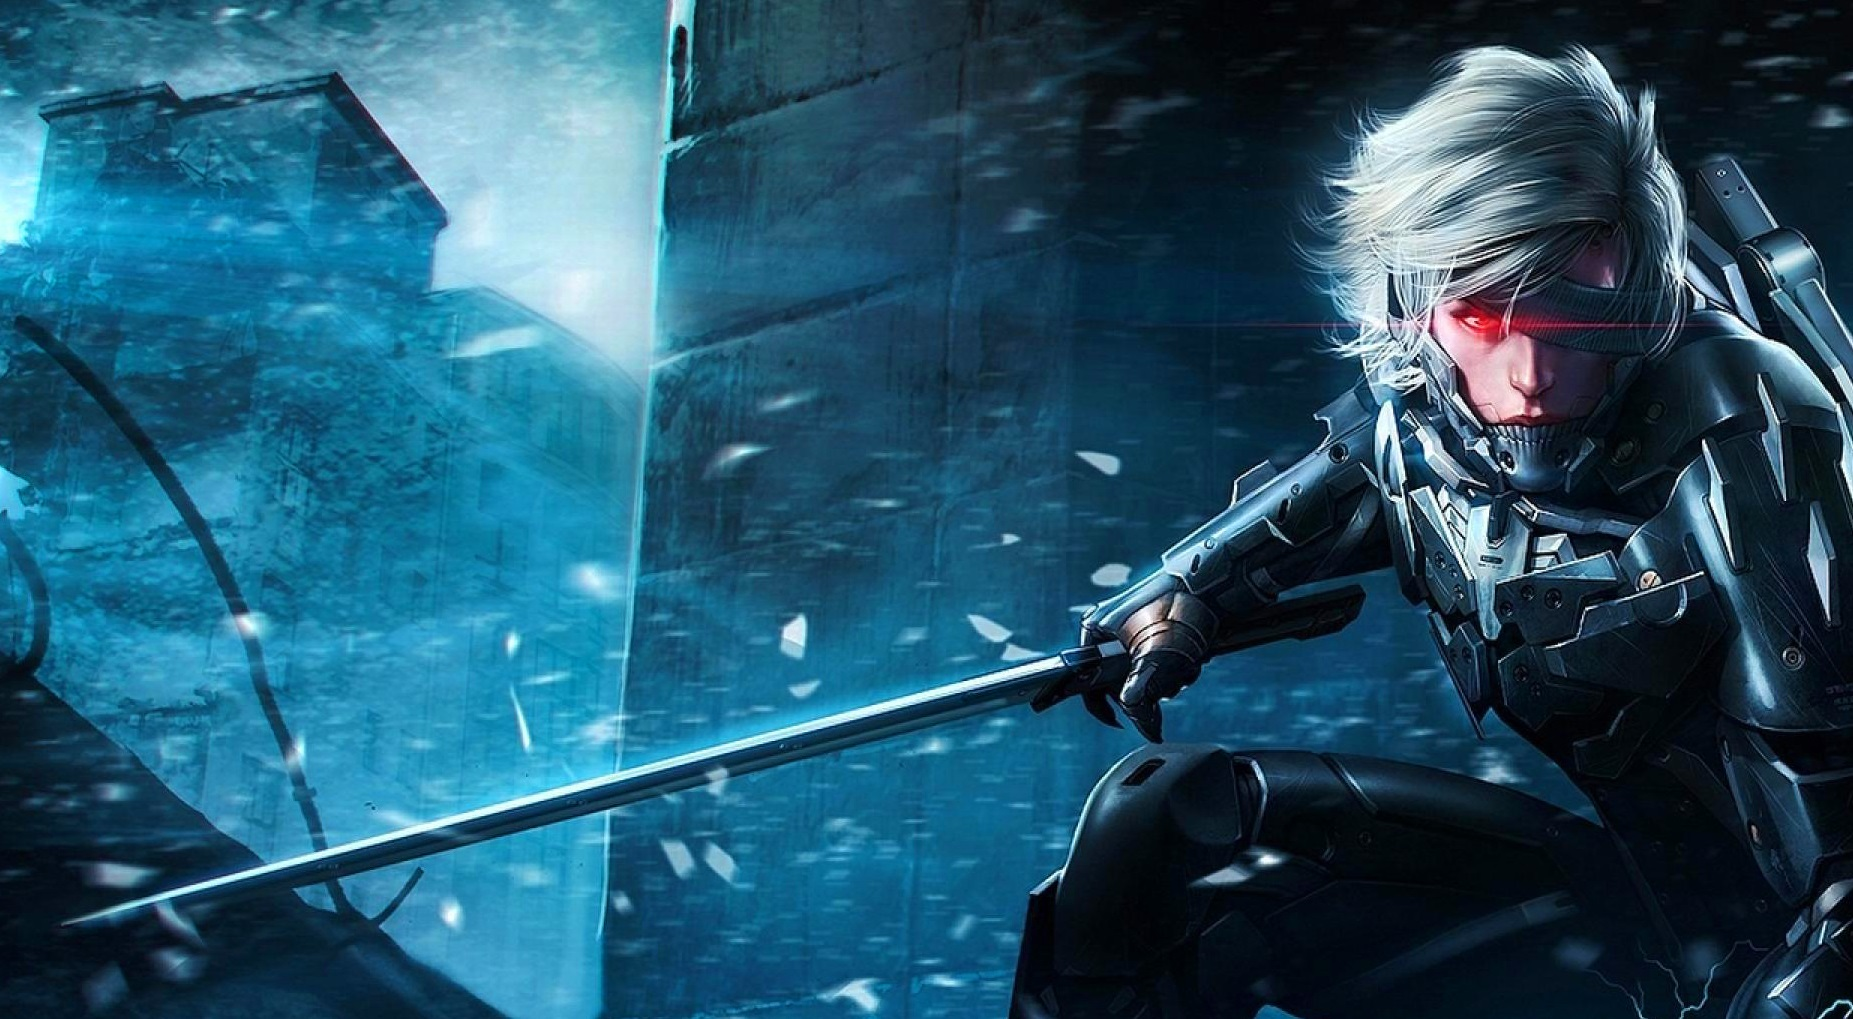 Image metal gear rising revengeance wallpaper hdg playstation metal gear rising revengeance wallpaper hdg voltagebd Image collections